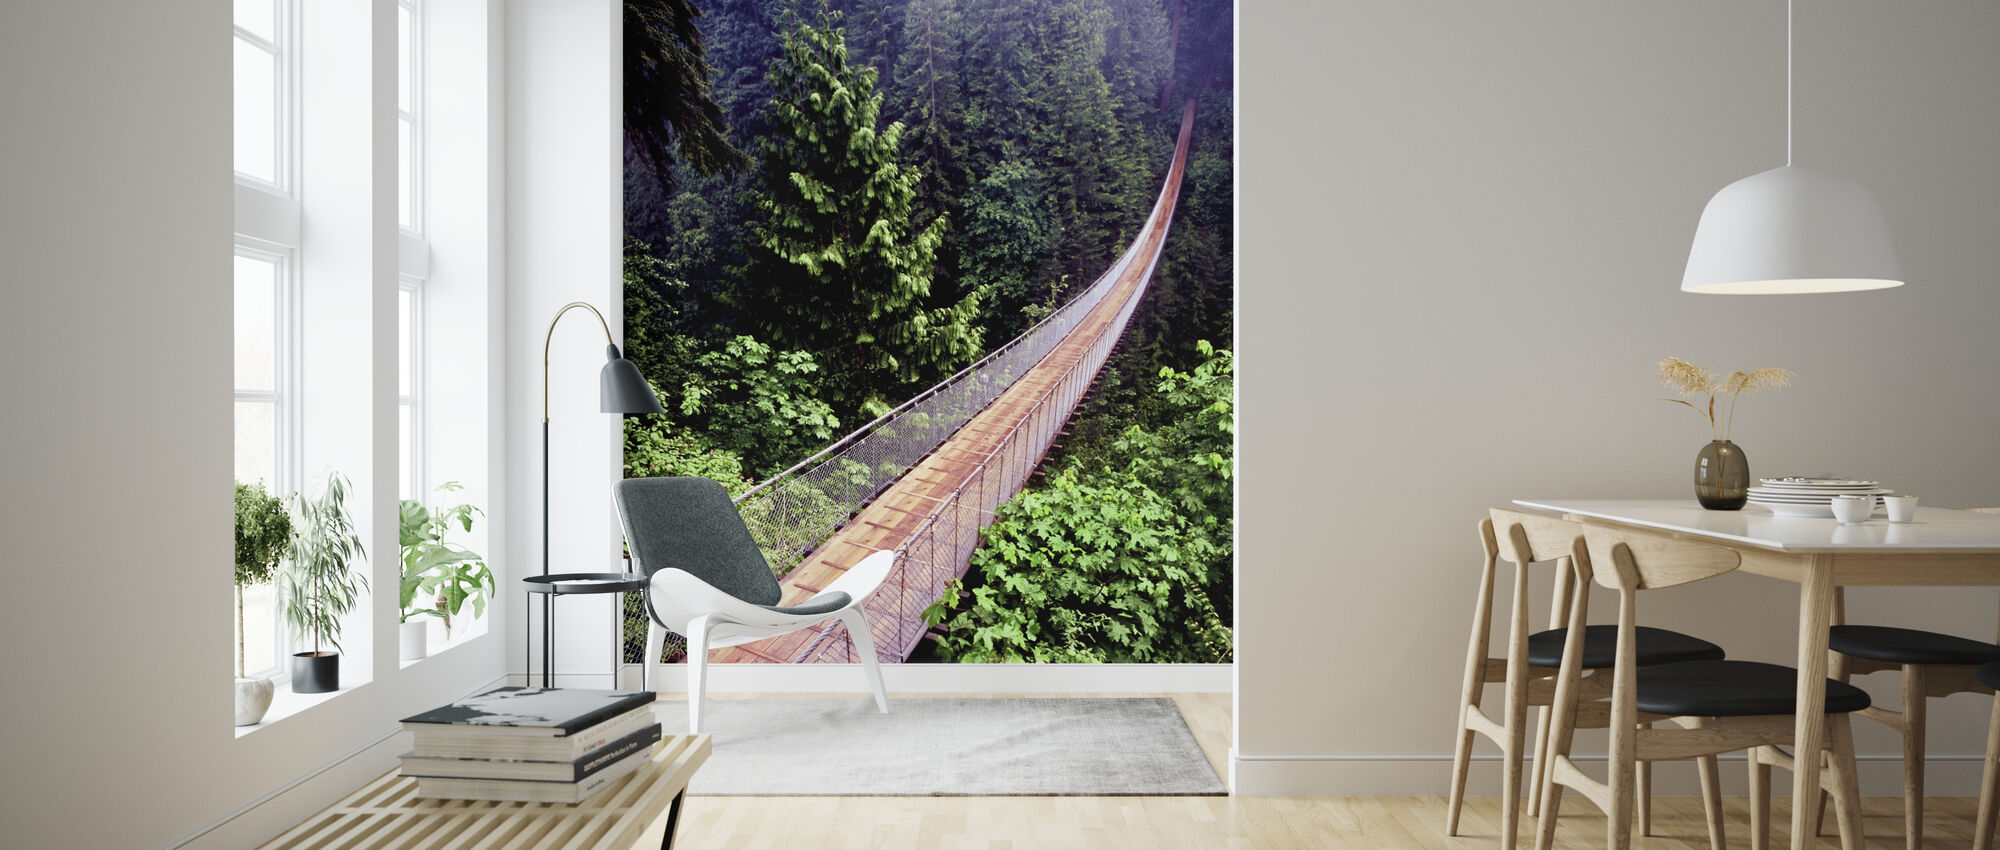 Capilano Bridge - Wallpaper - Living Room